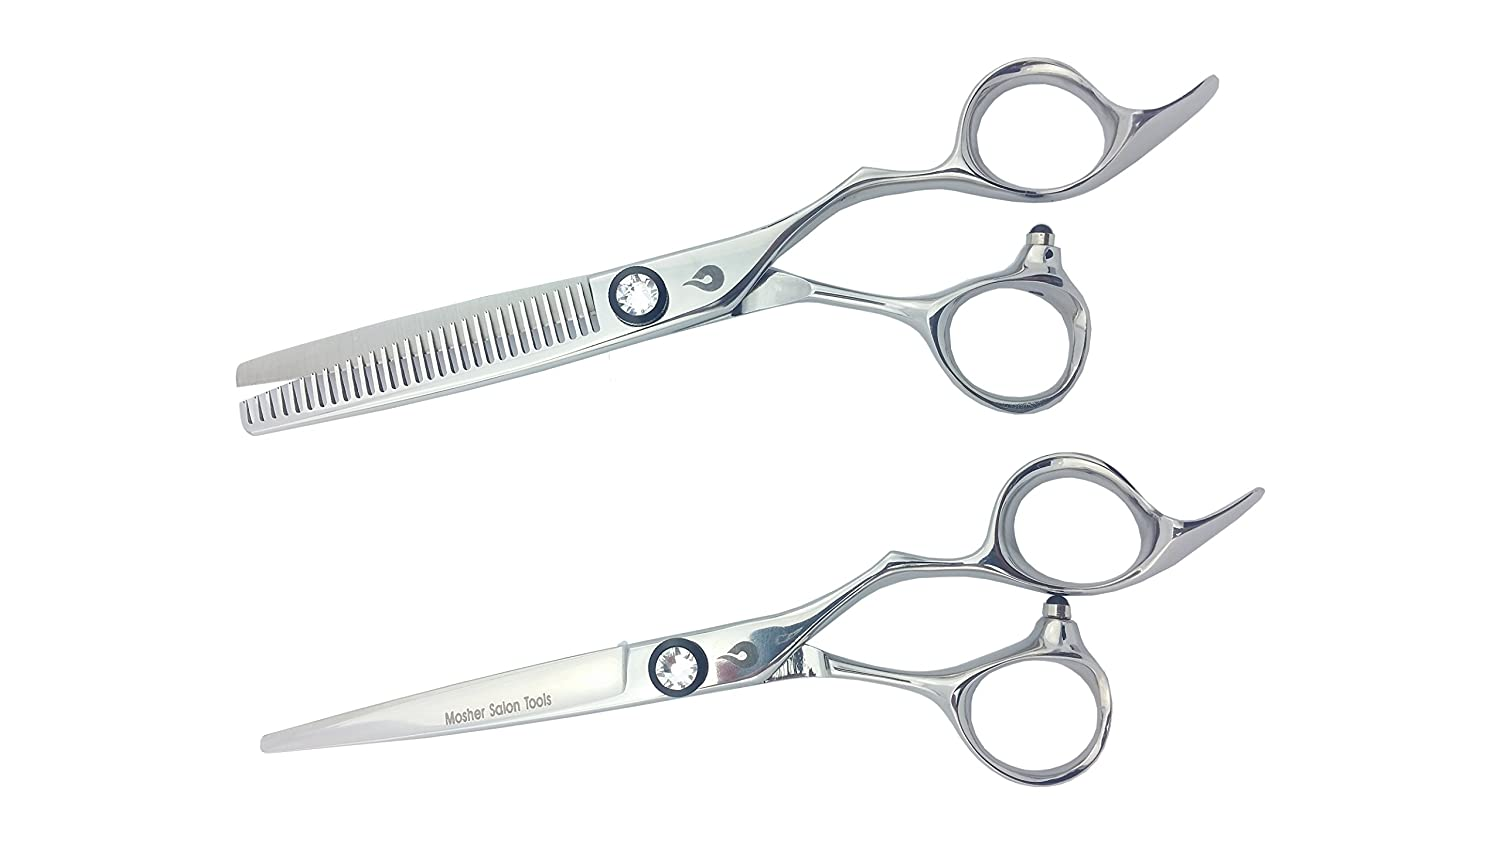 Top 5 Best Hair Cutting Shears 2019 – Reviews & Buyer's Guide 5